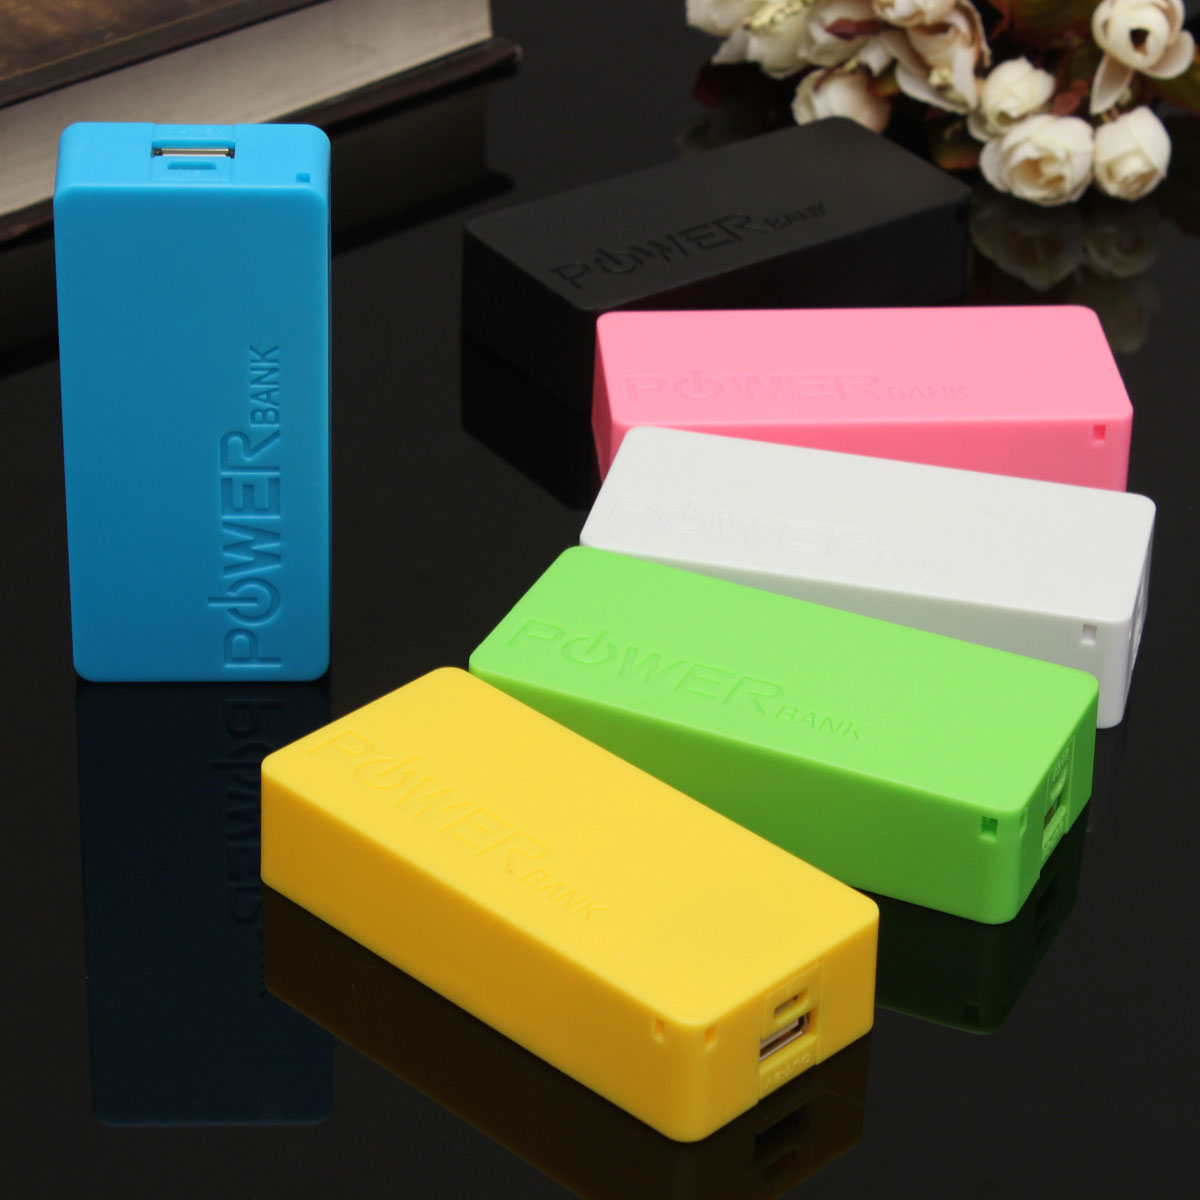 5600mAh 2X 18650 USB Power Bank Battery Charger Case DIY Box For iPhone Sumsang